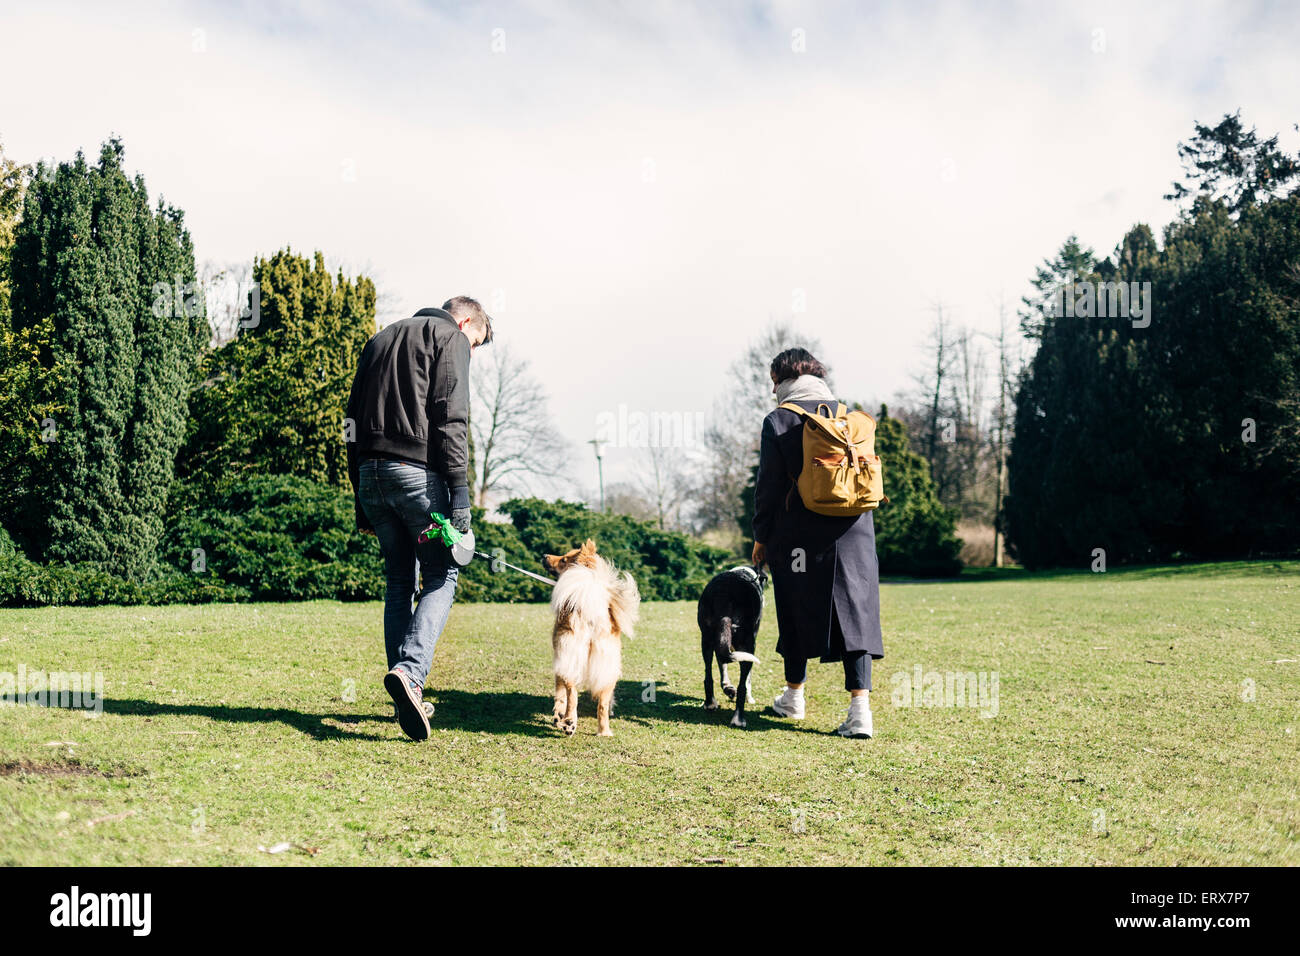 Rear view of young couple walking with dogs at park - Stock Image